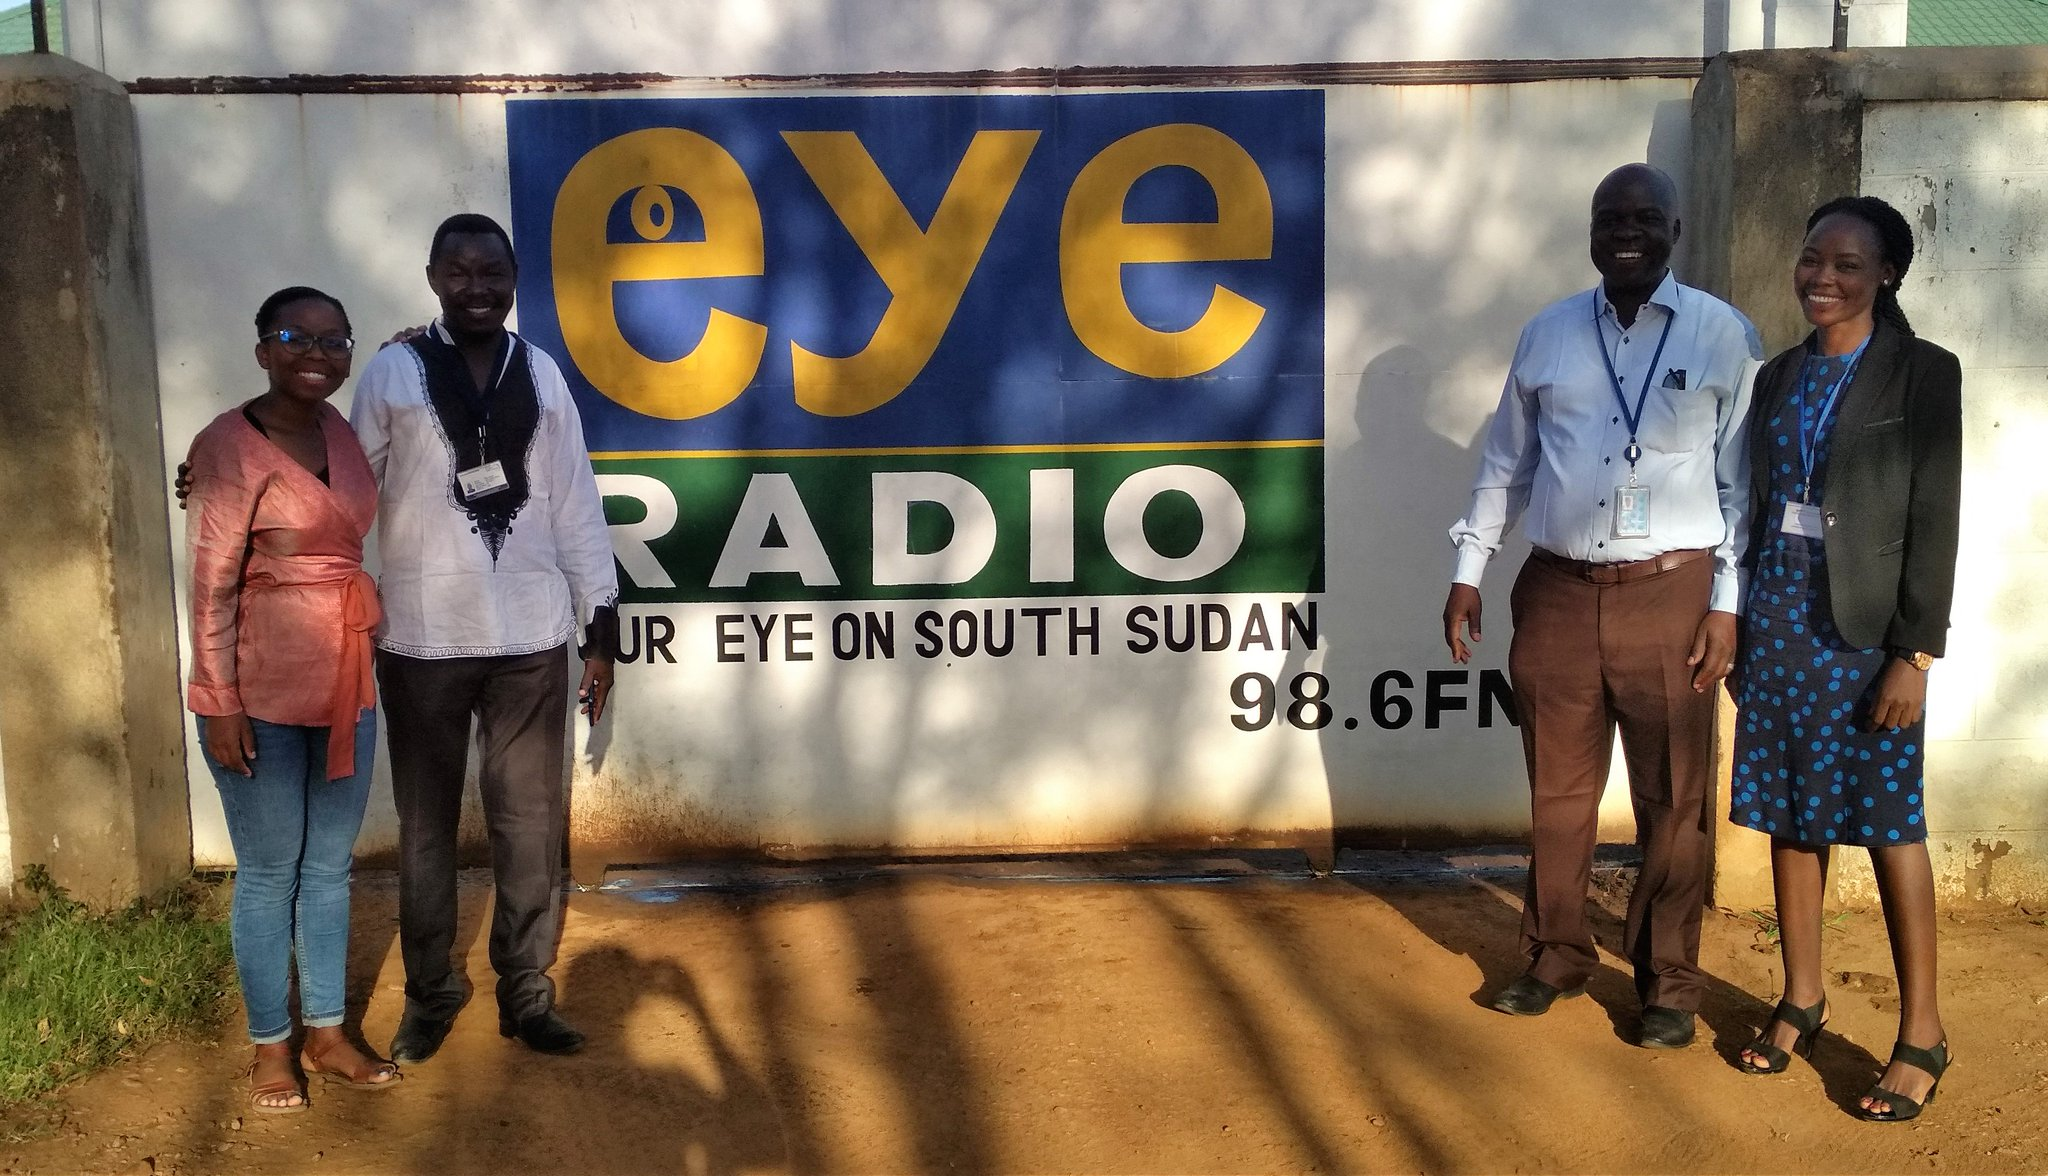 SouthSudan NGO Forum on Twitter: